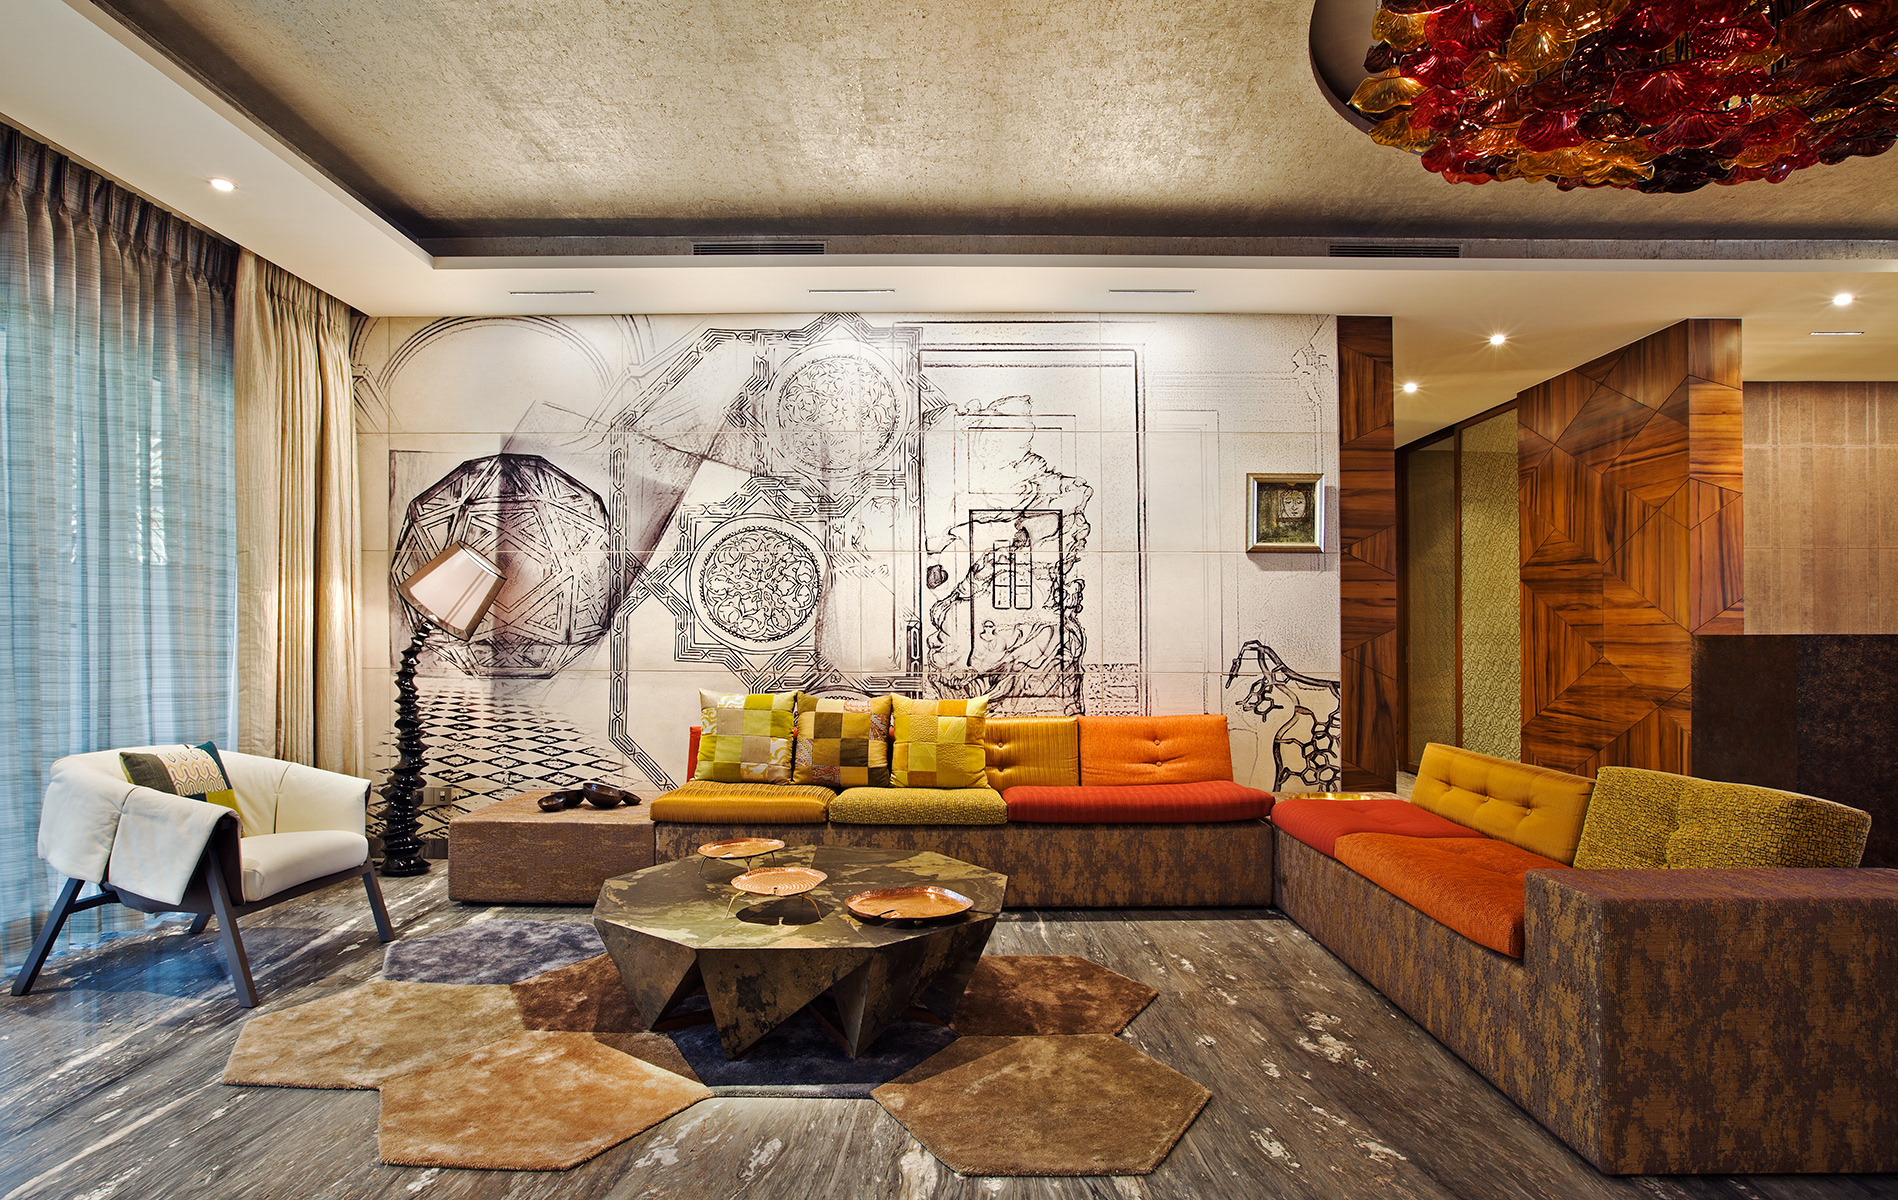 Art living room wallpaper tips and ideas for your walls